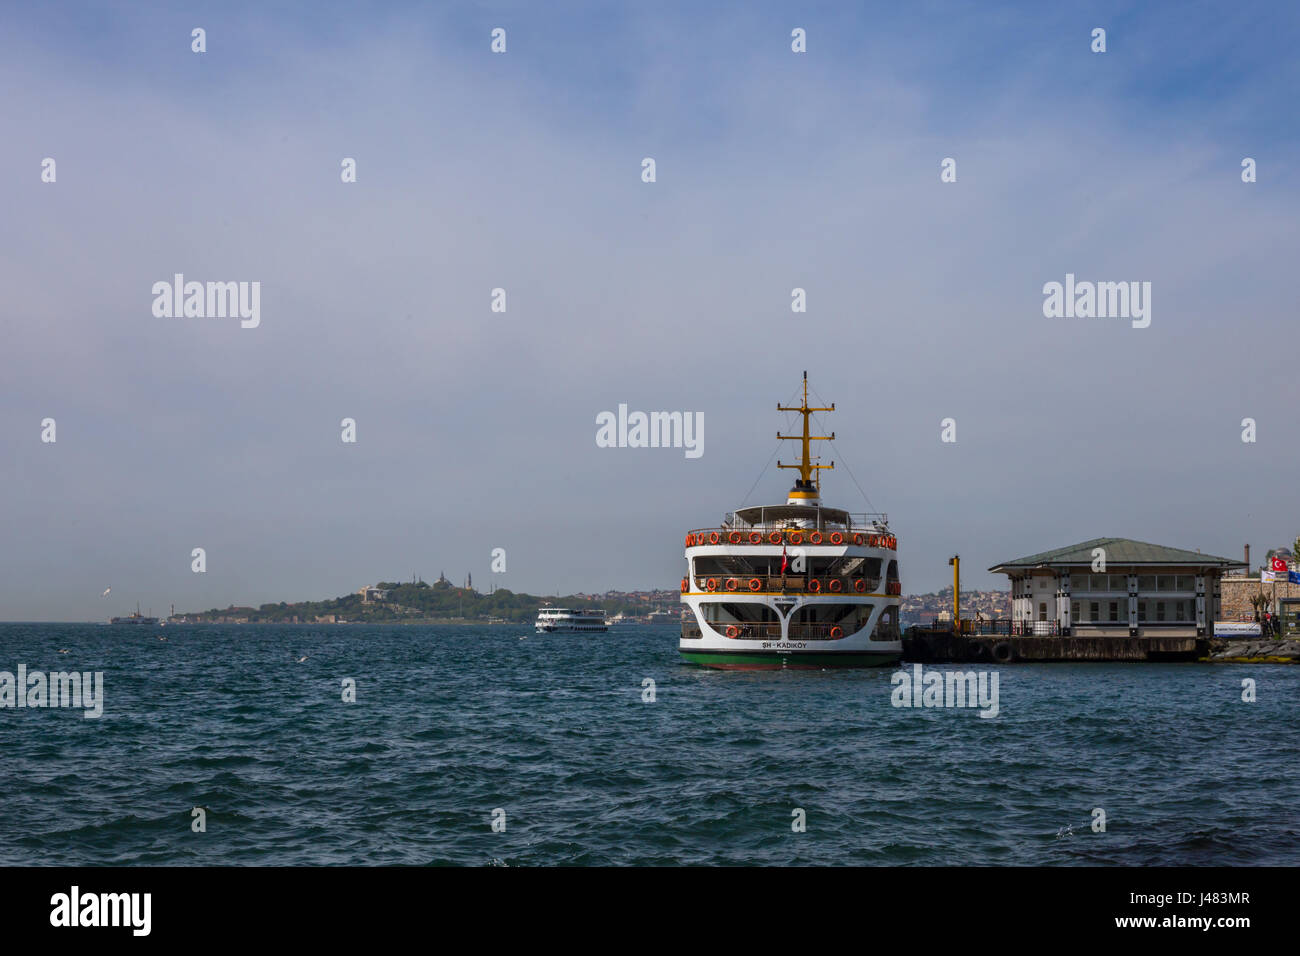 Istanbul ferry stop at Besiktas Iskele, Istanbul. Ferry waiting for passengers to board. Bosphorus channel view - Stock Image